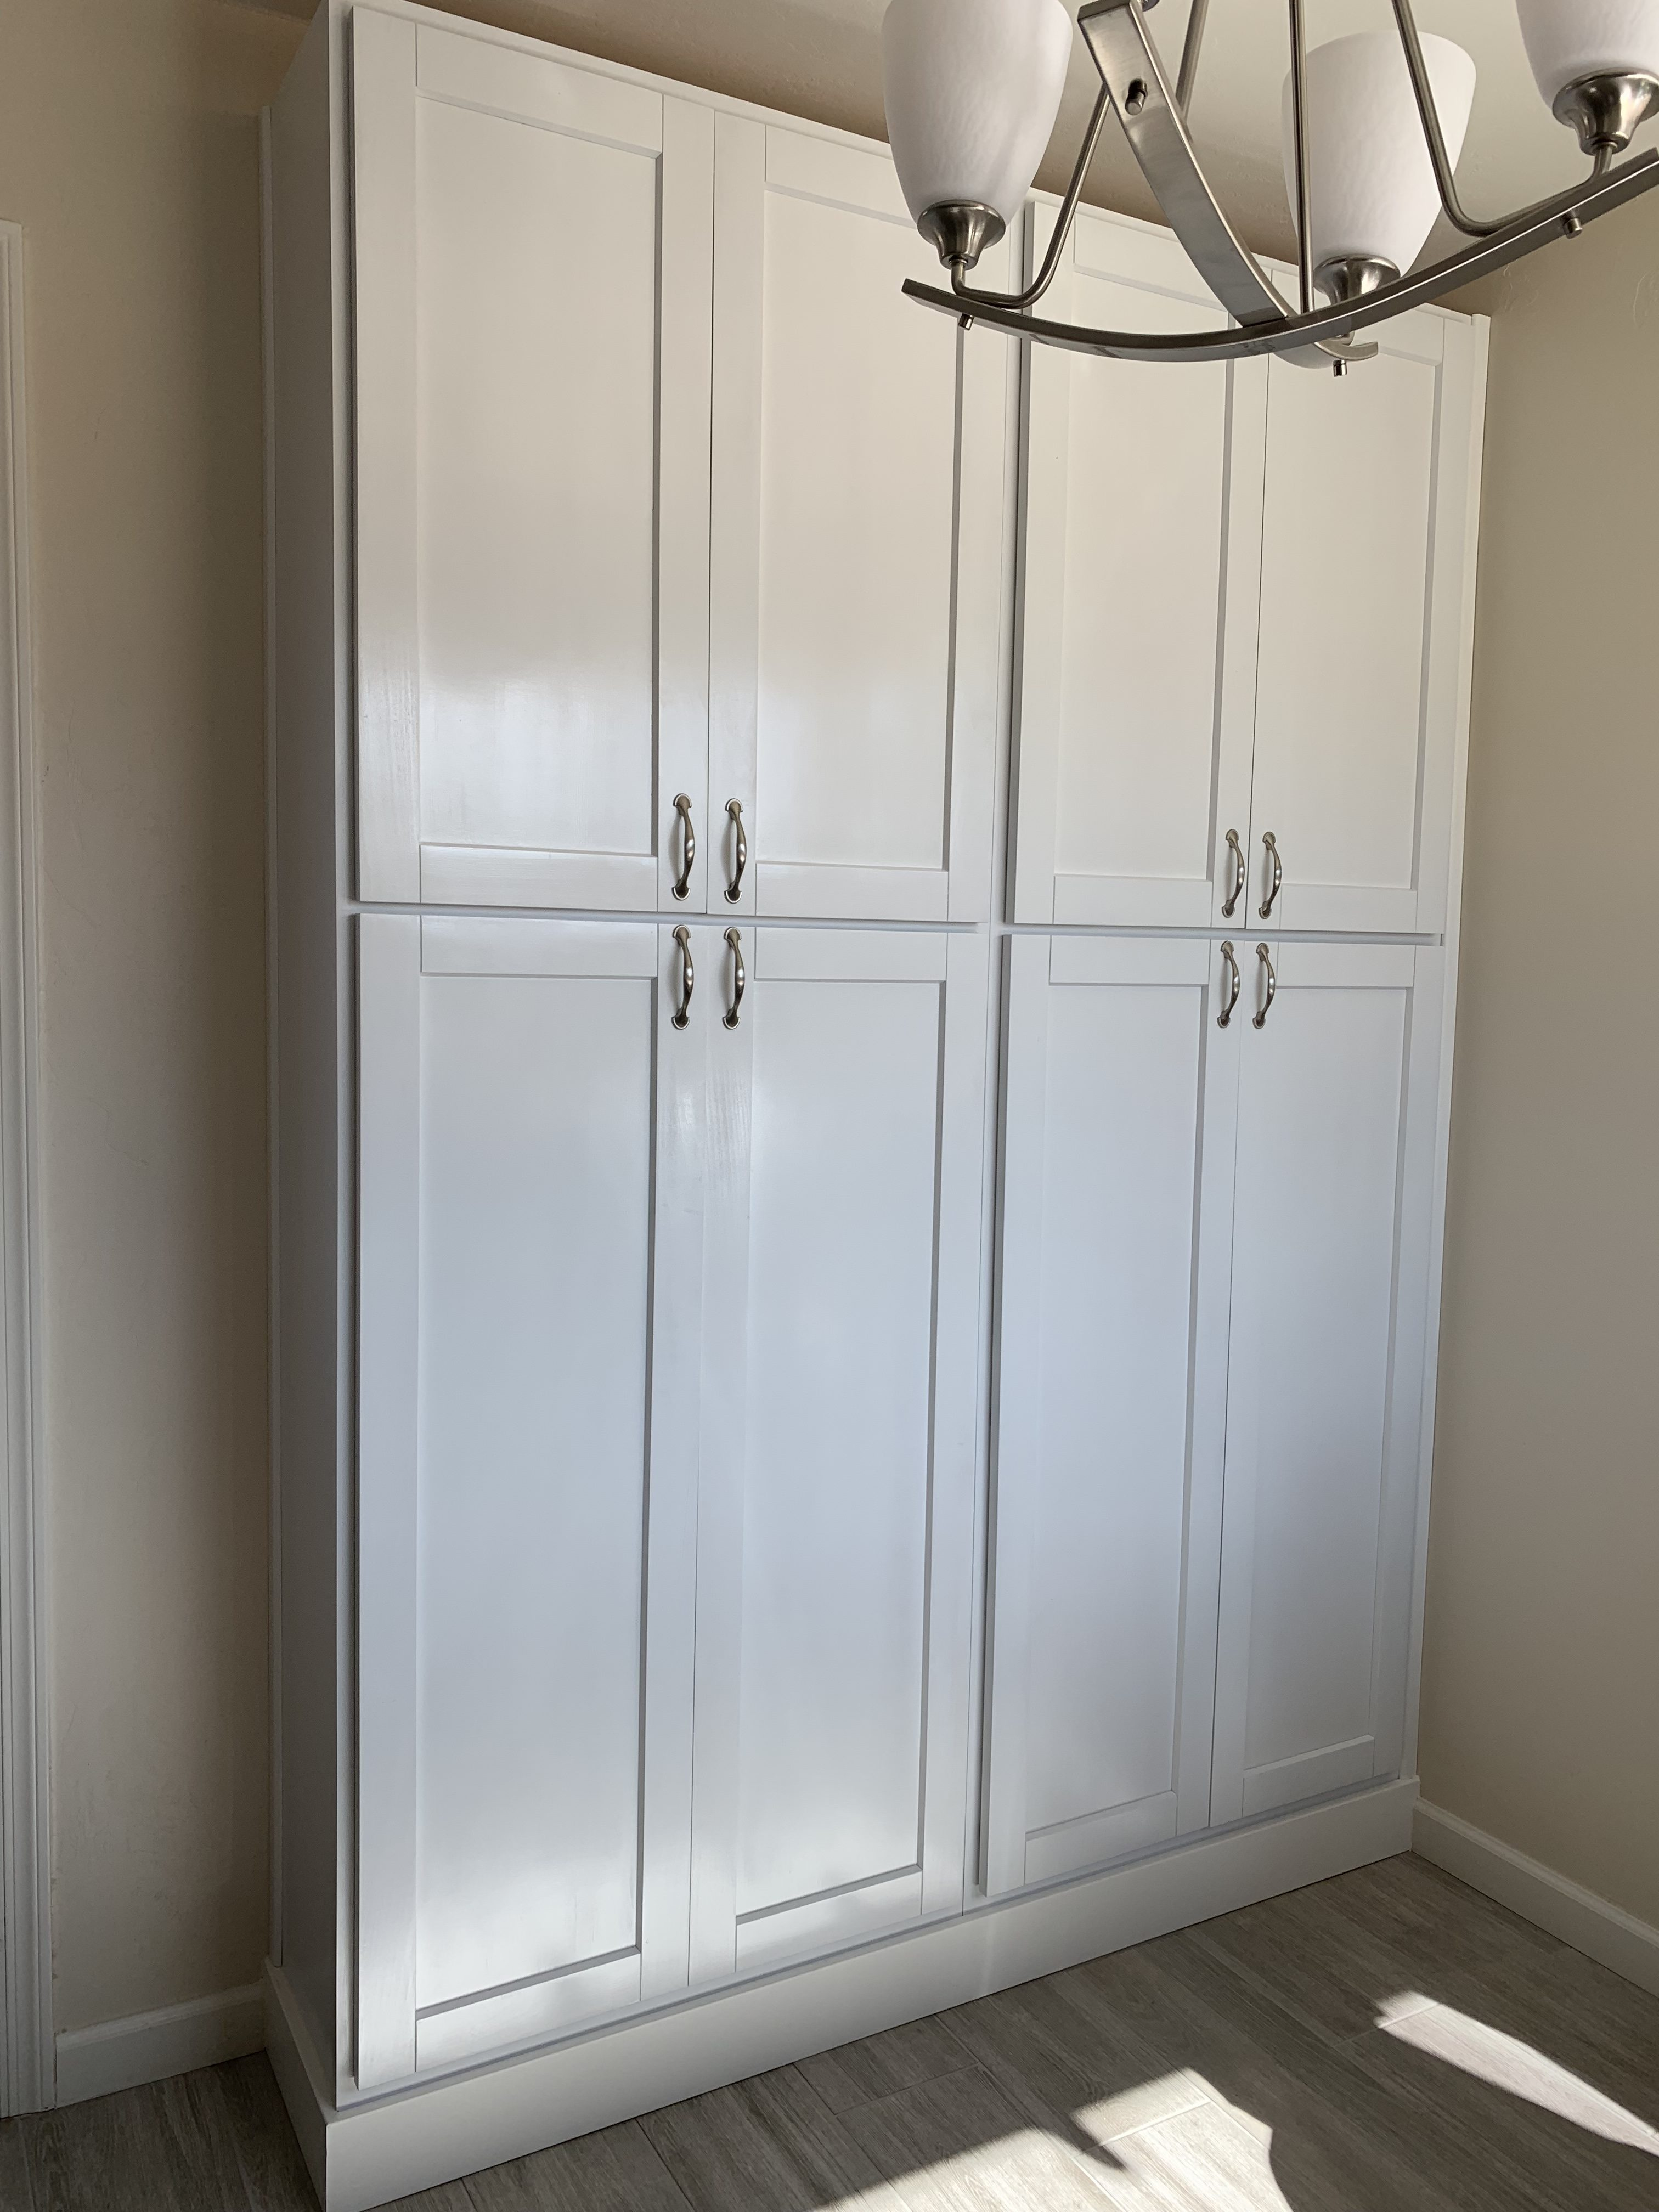 Arter Pantry Cabinets